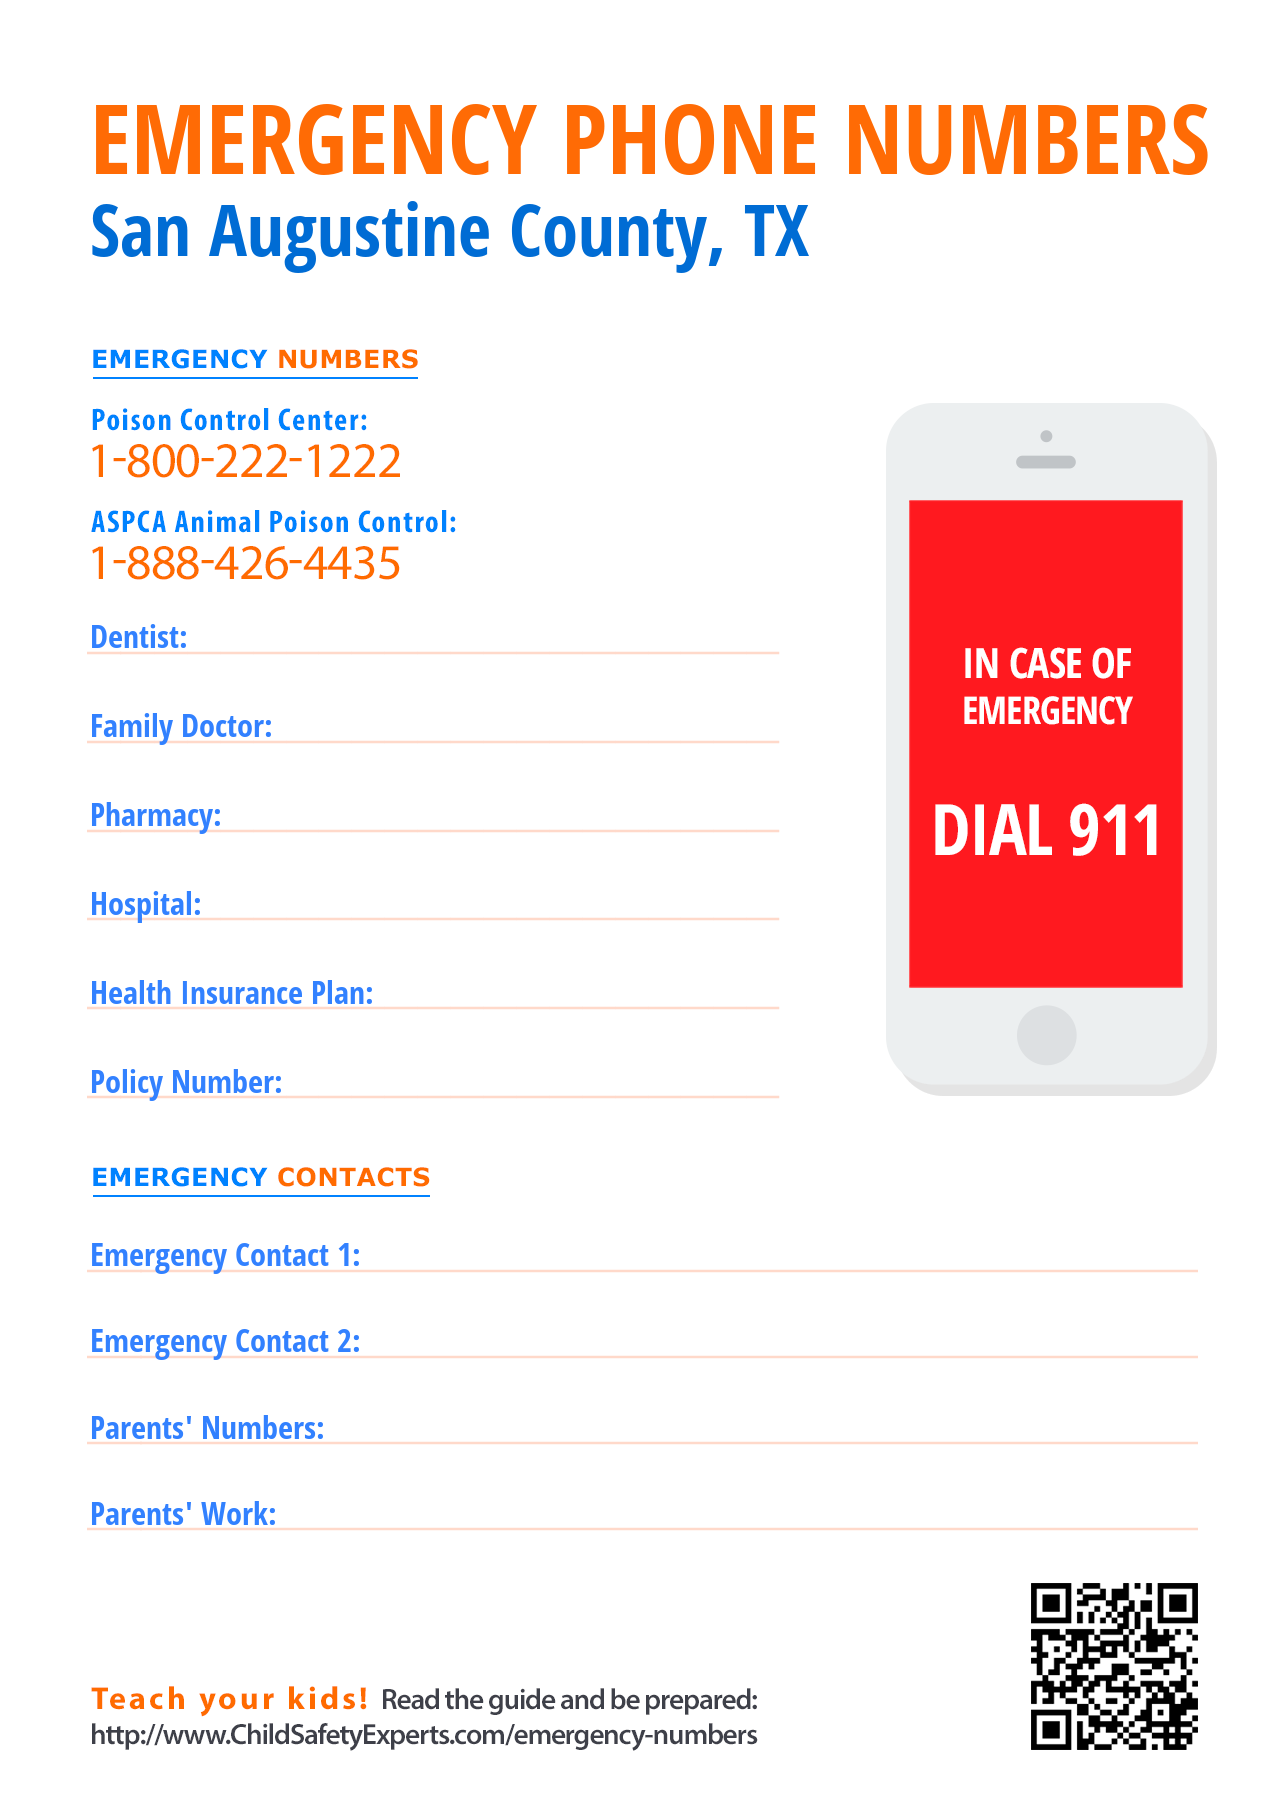 Important emergency phone numbers in San Augustine County, Texas